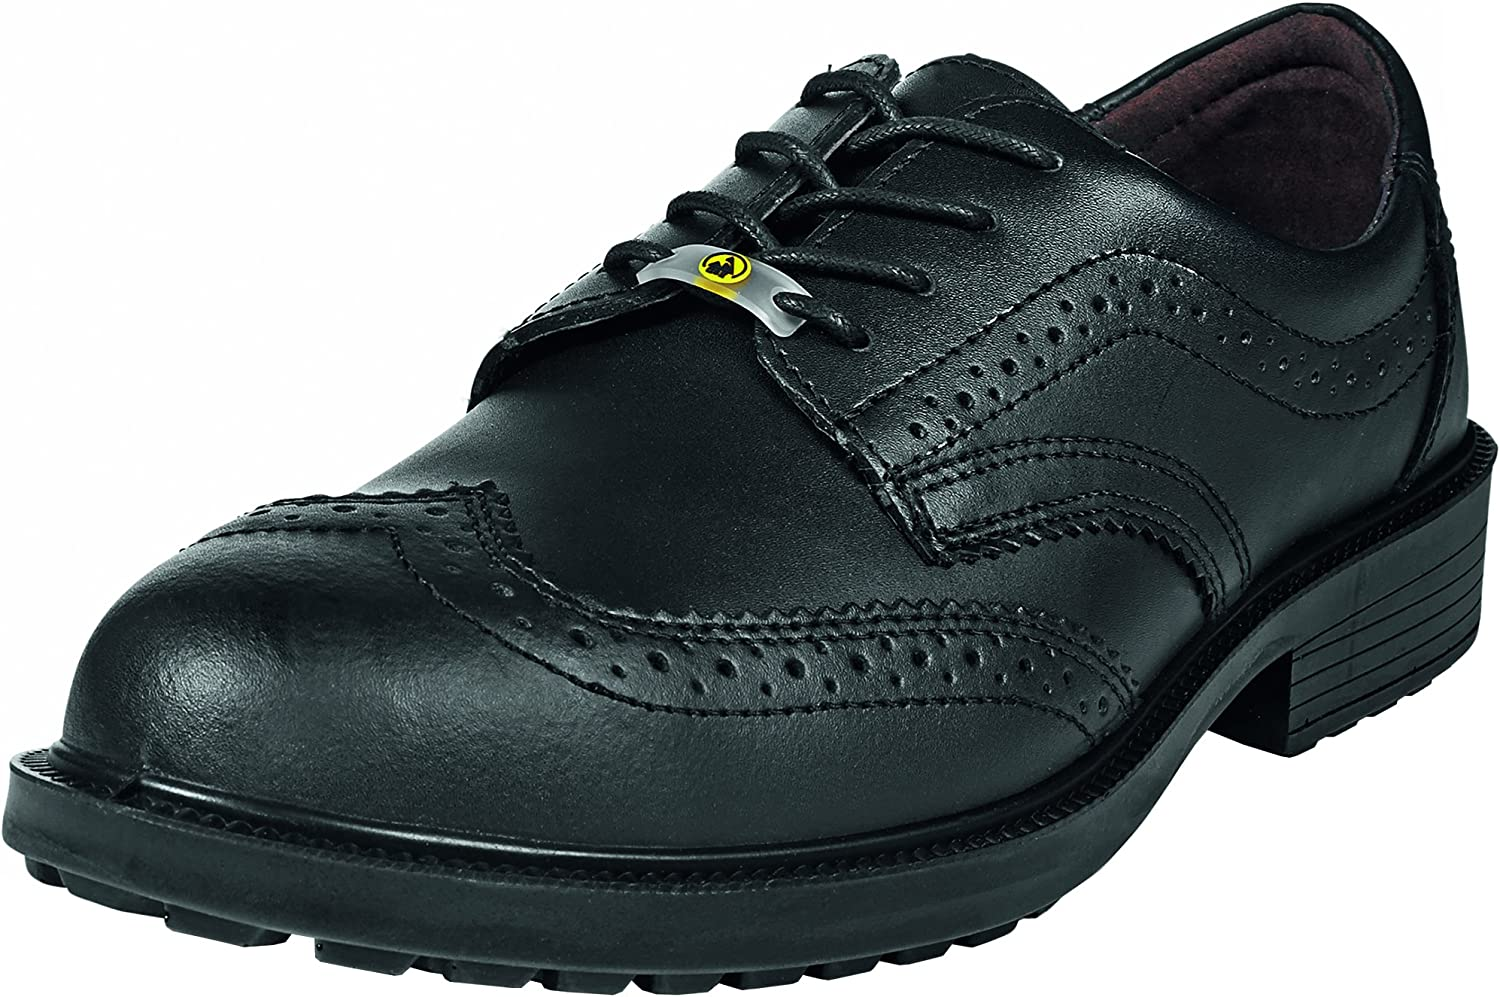 RuNNex 5260-47 Safety shoes,  OfficeStar , S2, Size  47, black - EN safety certified